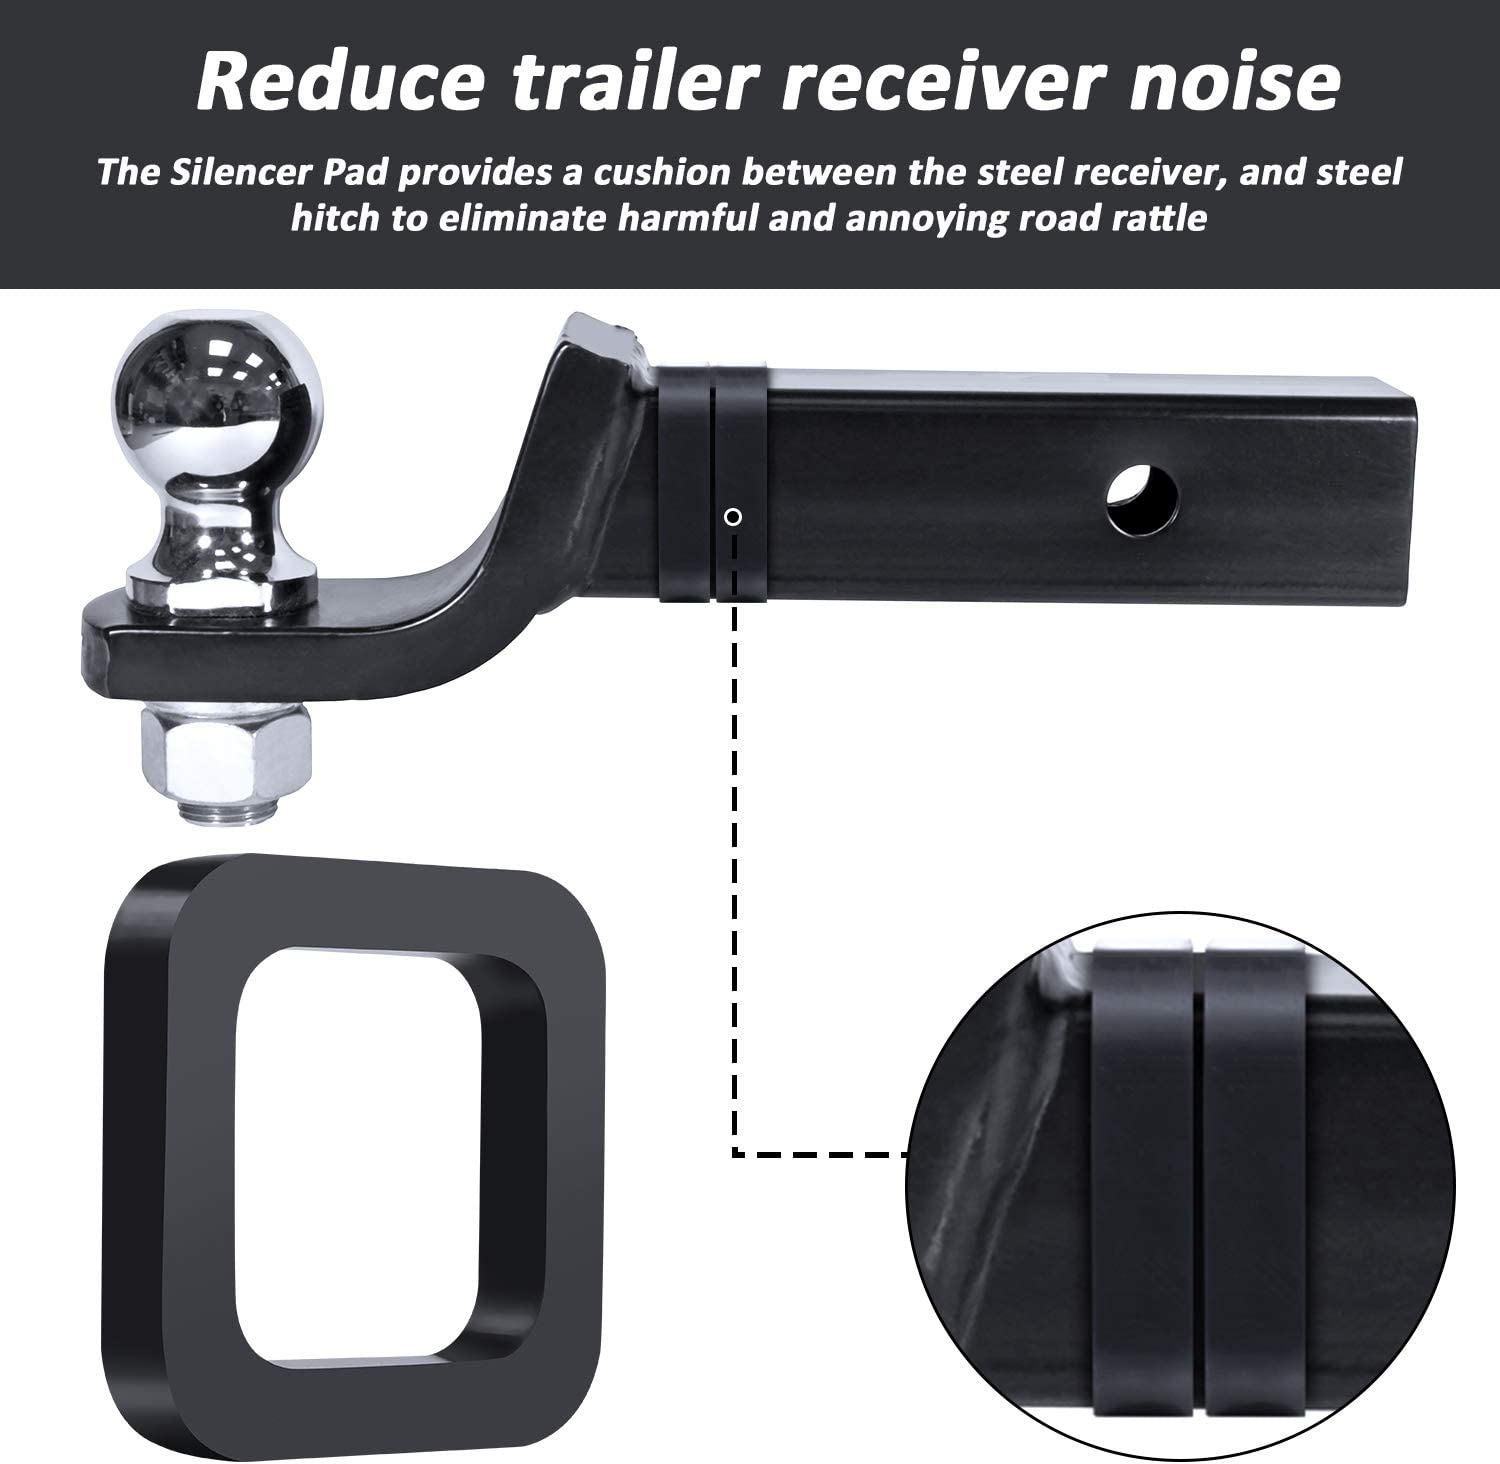 DEDC 4 Pieces 2 Inch Hitch Receiver Silencer Pads,Pads for Adjustable Ball Mounts Provide Cushion Between Receivers and Tow Hitches for Any 2 inch Trailer Hitch Receiver